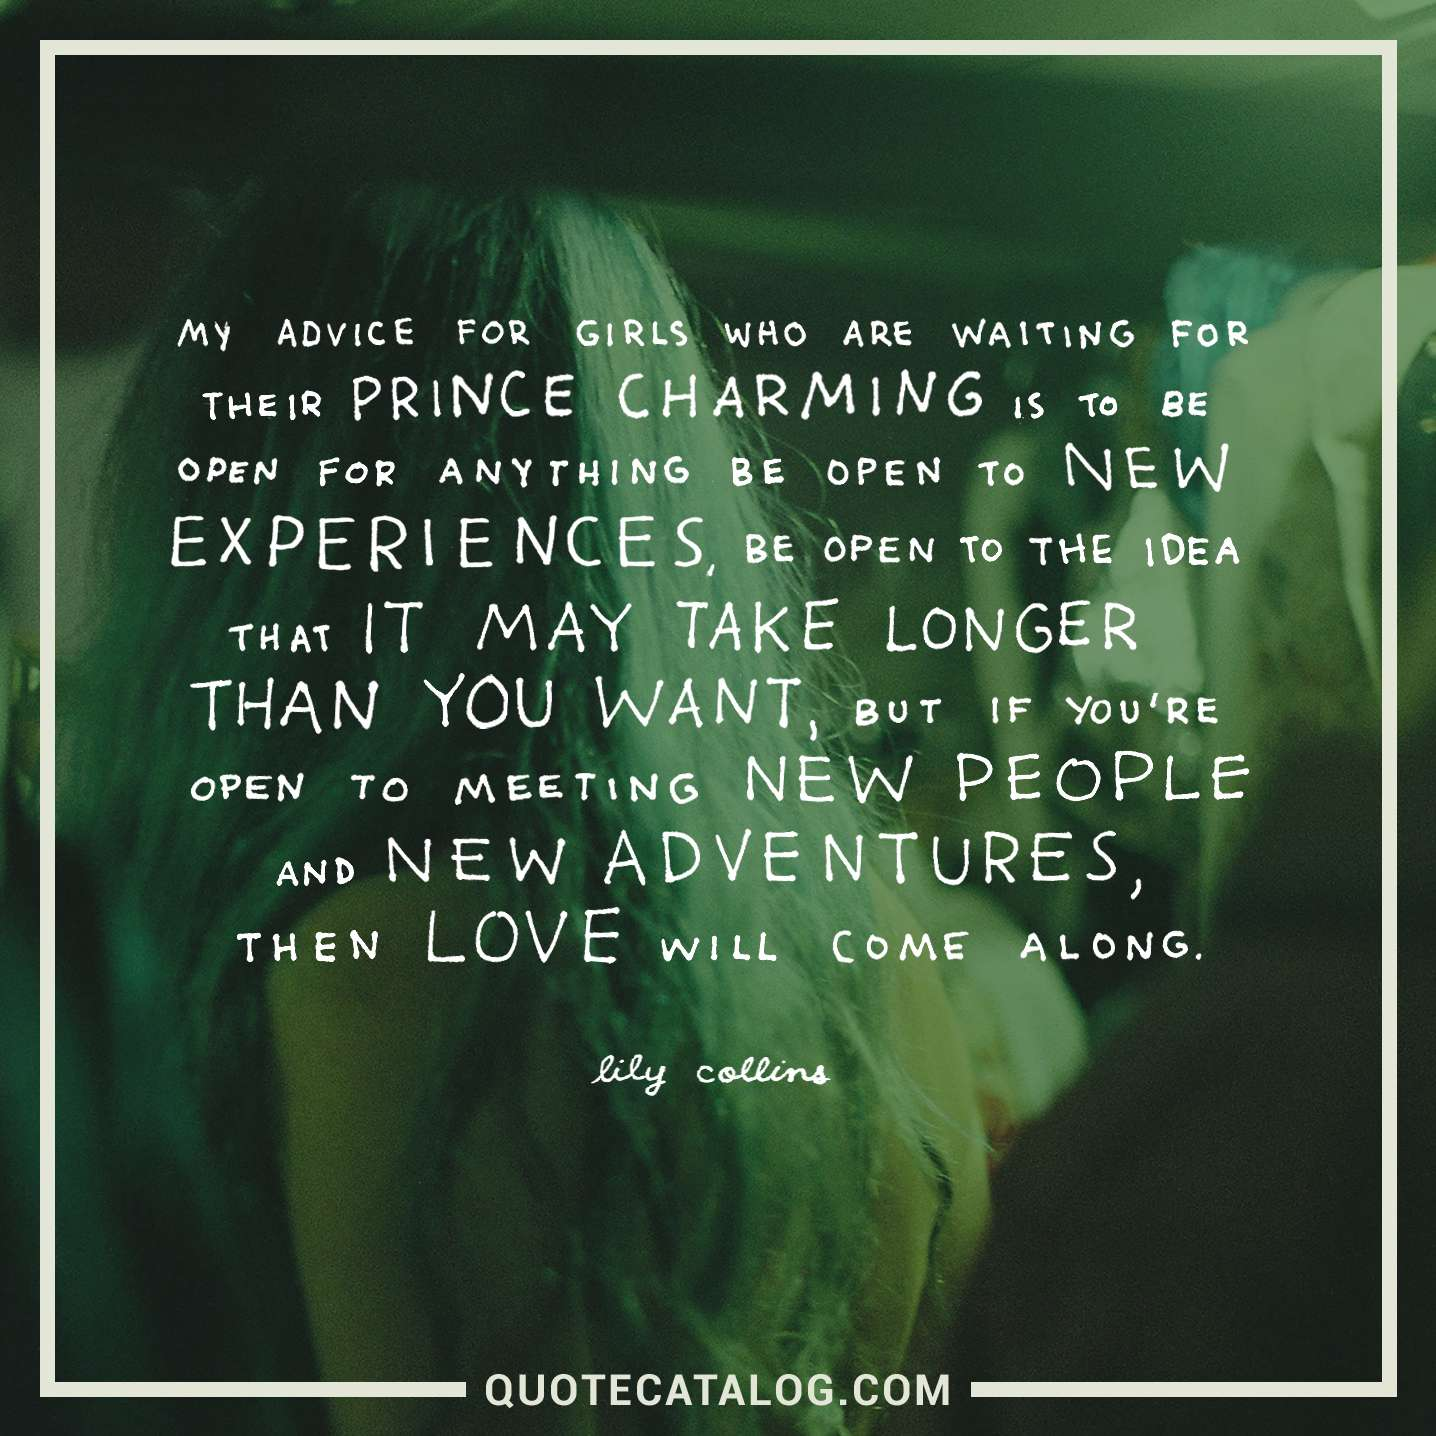 Lily Collins Quote - My advice for girls who are waiting for